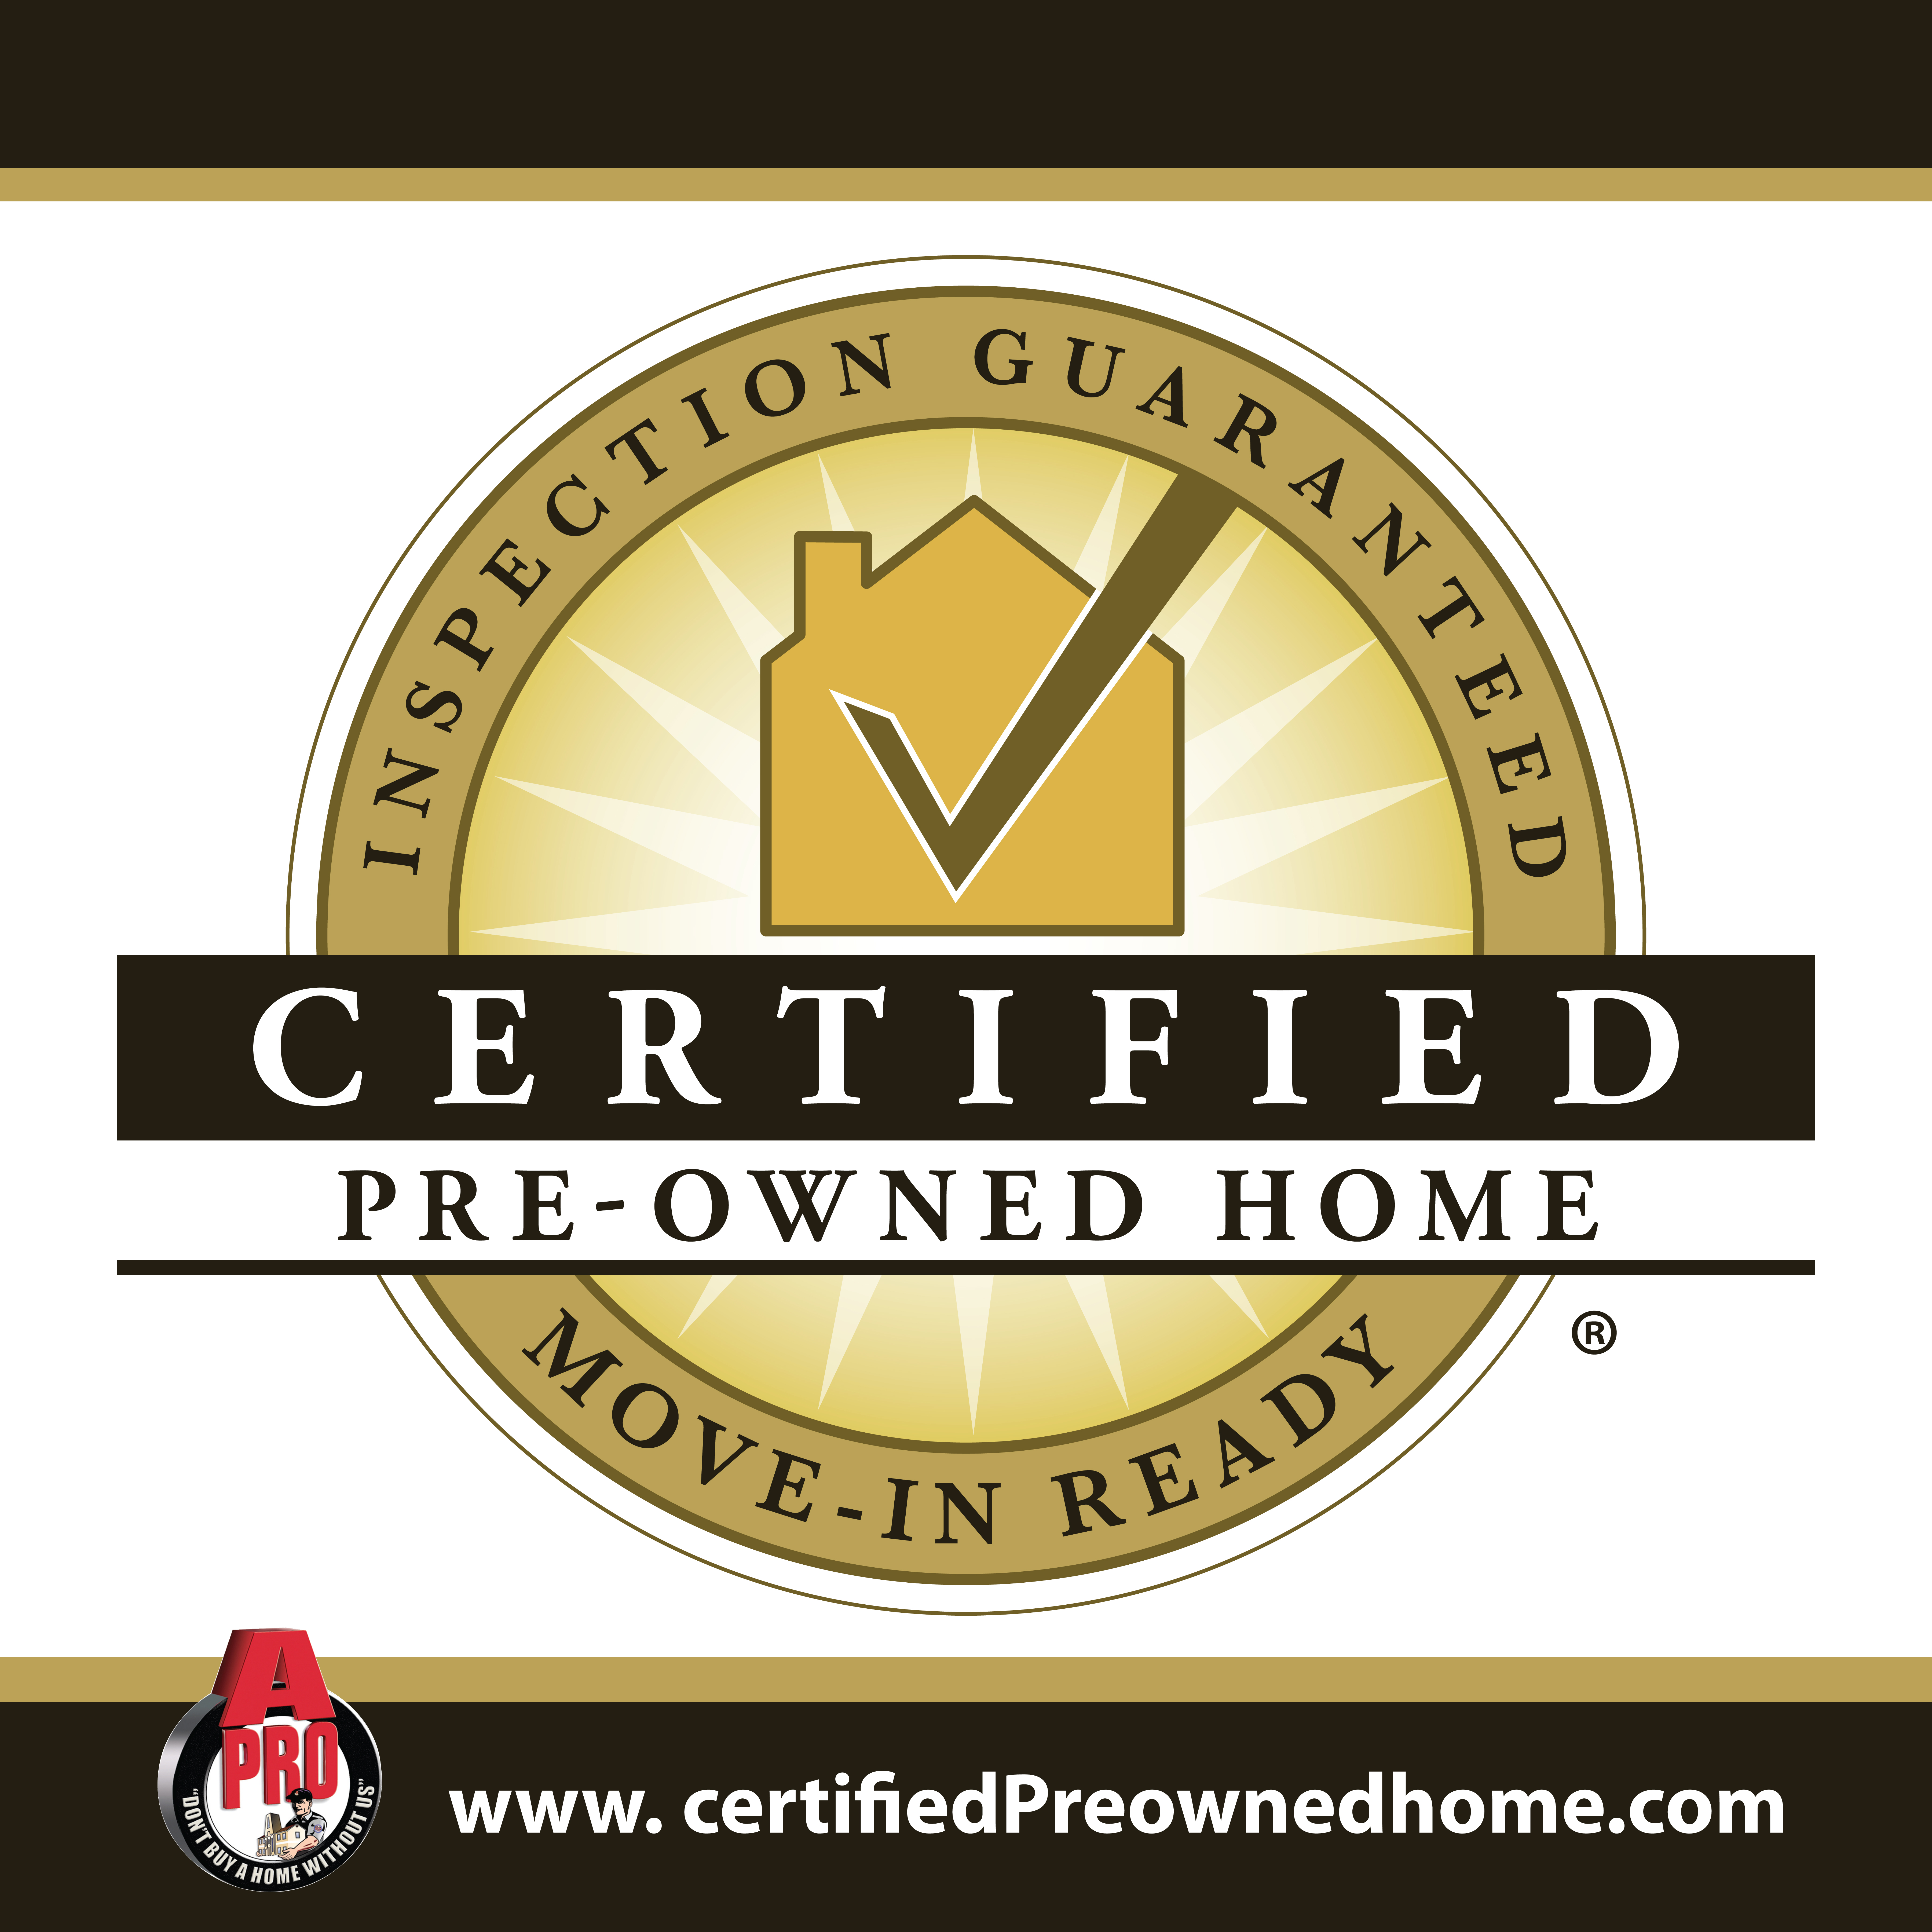 A-Pro Morristown can provide Certified Pre-Owned Home certification